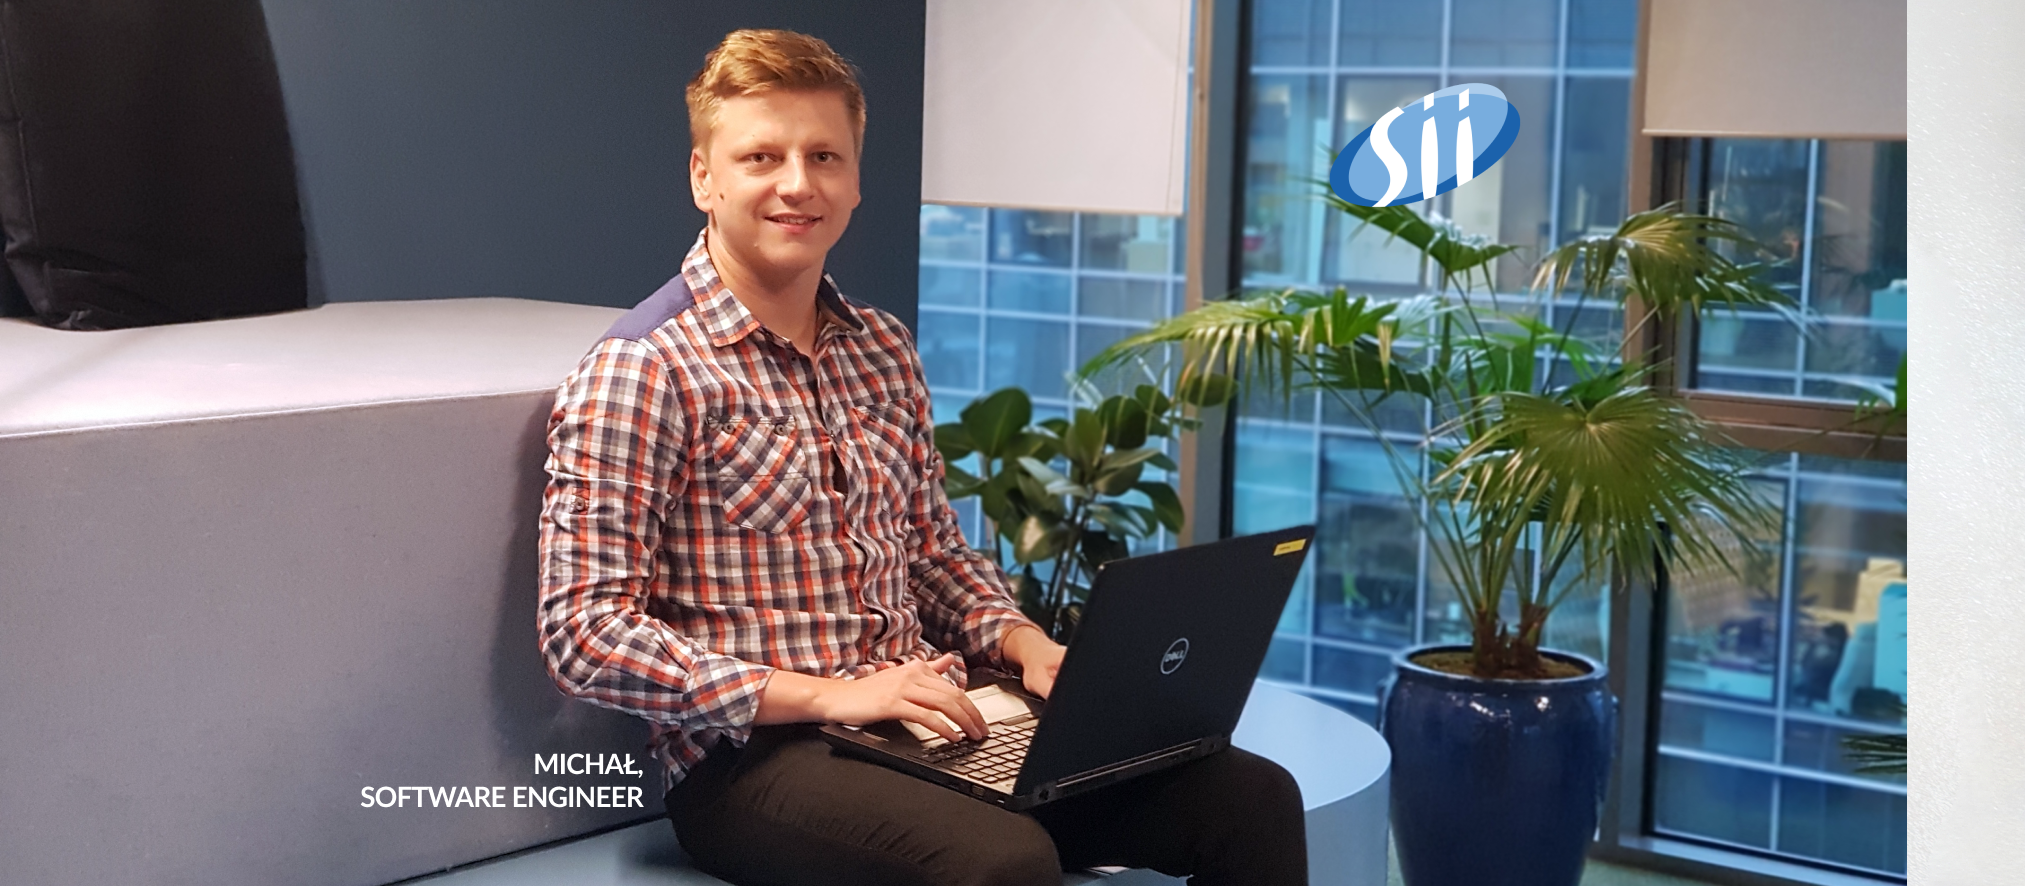 Guarding transparency in public space. Join Sii Poland engineers and become a volunteer in Watchdog